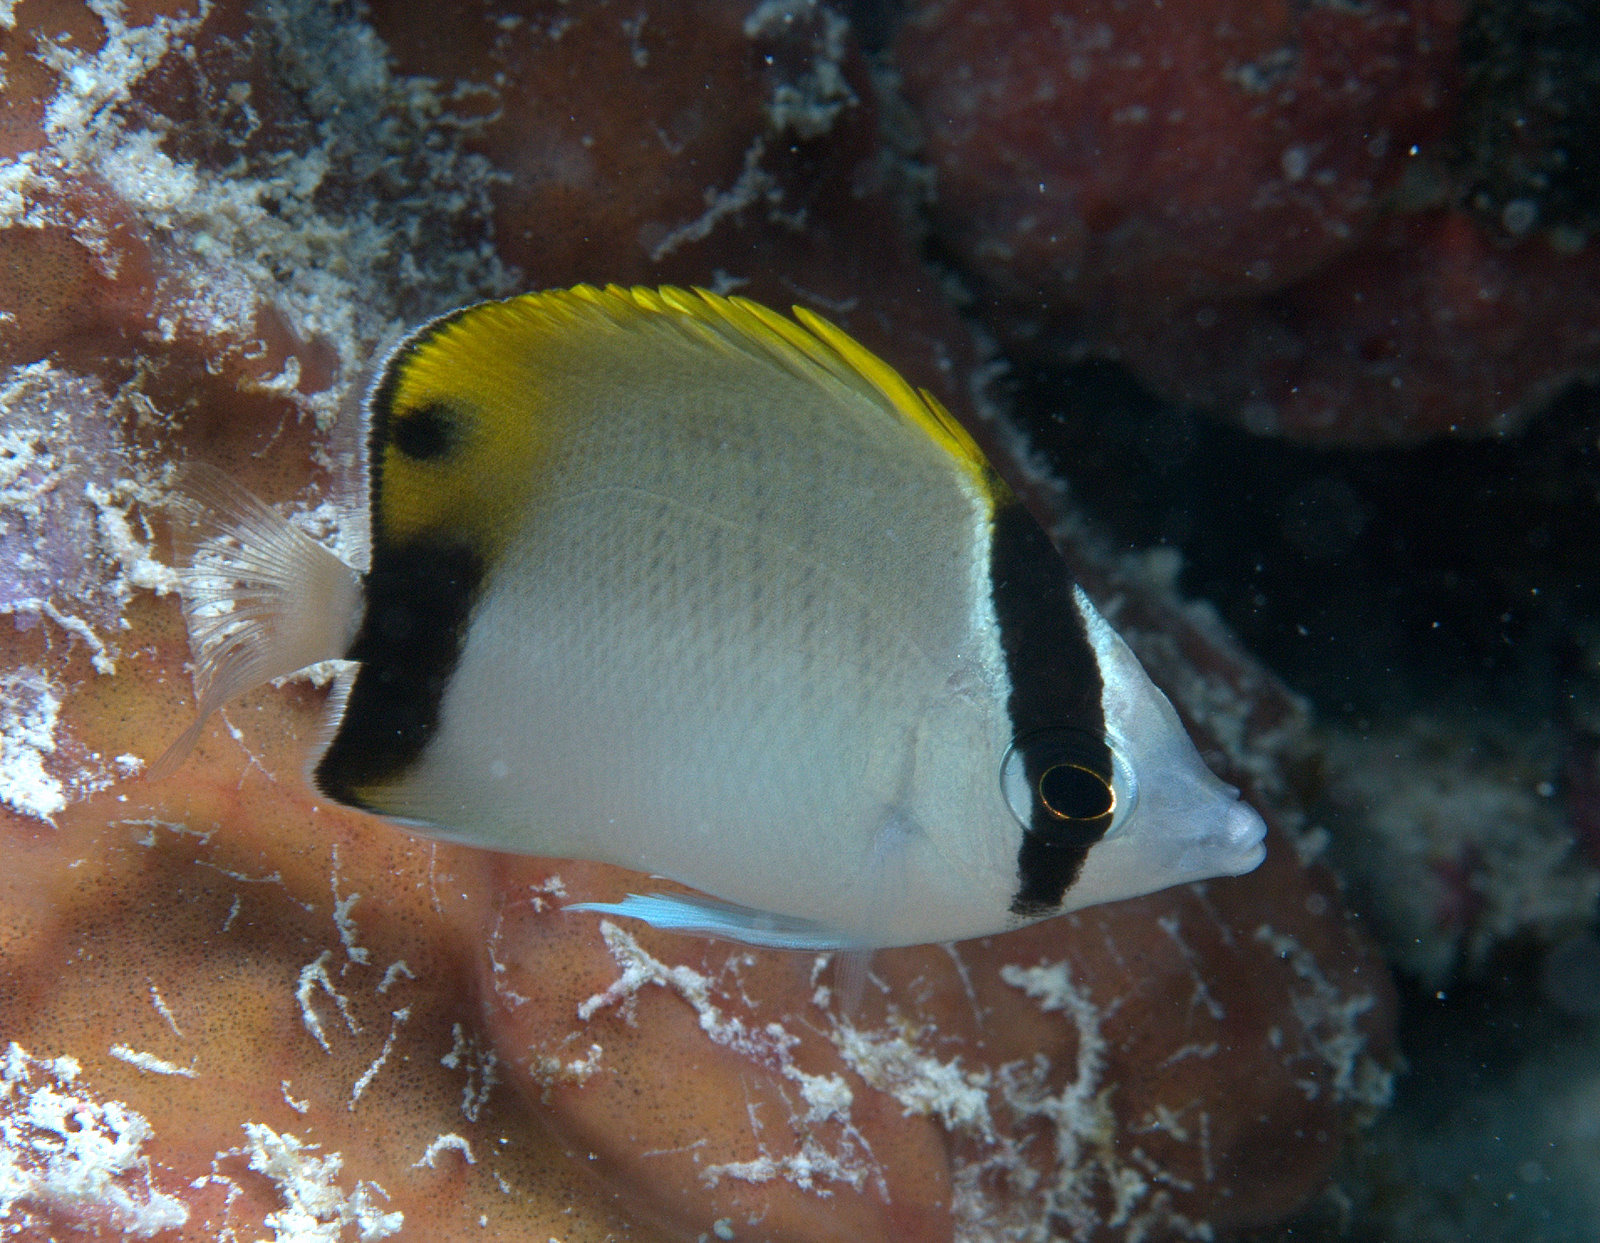 under pressure world: Juvenile Reef Butterflyfish- Key Biscayne, FL